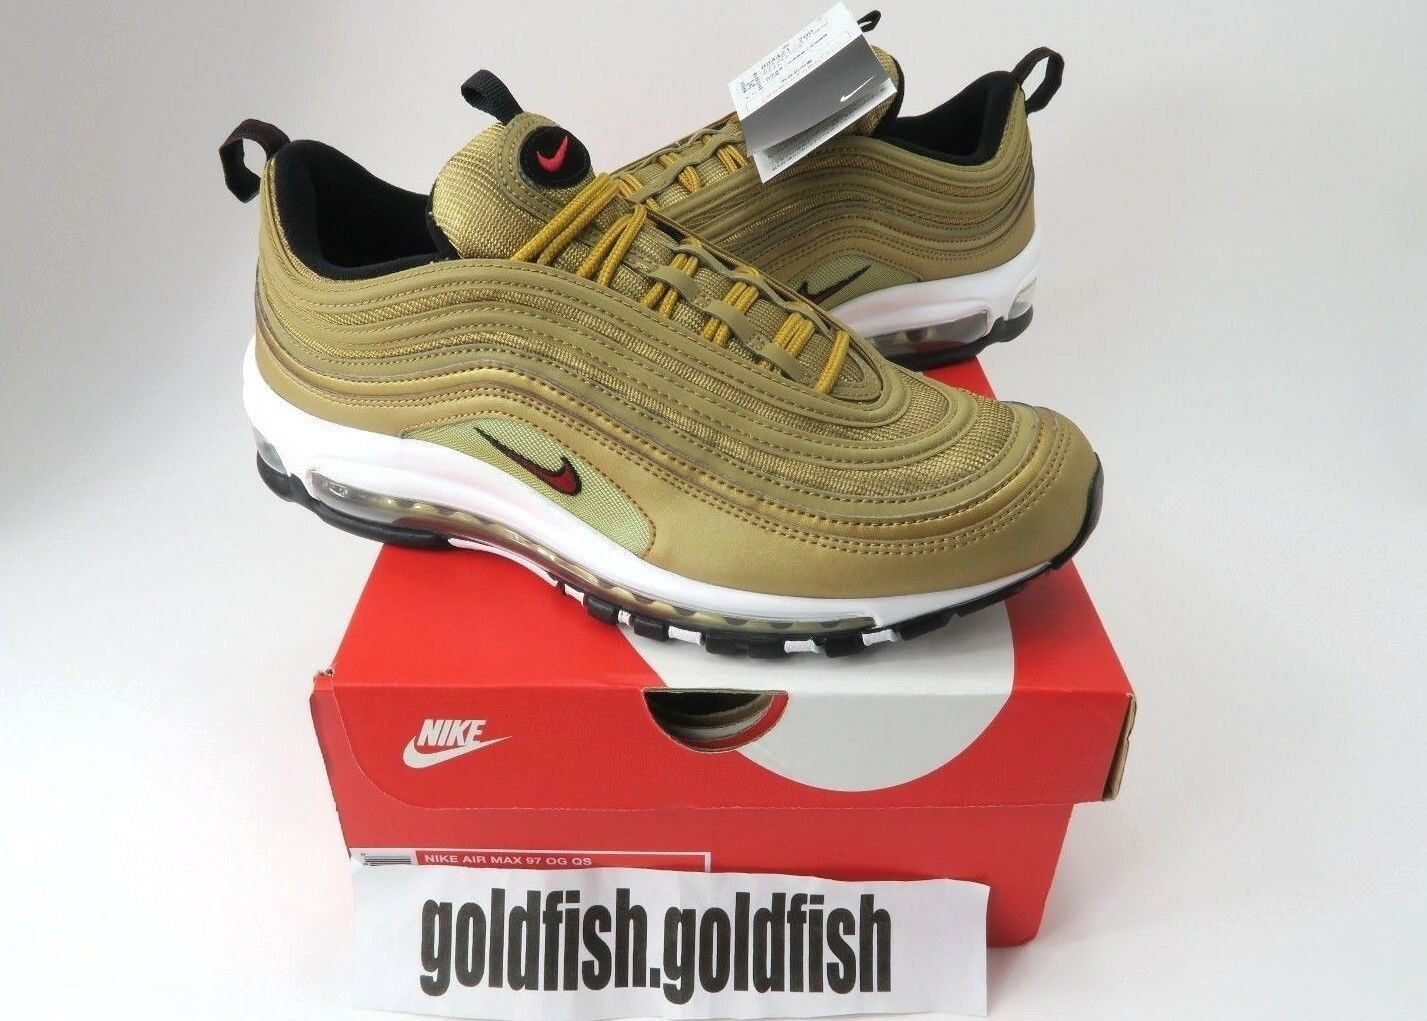 9e33f859de DS NIKE AIR 97 OG 884421 700 METALLIC gold BULLET VARSITY RED 2017 MAX QS  neznyi2249-Athletic Shoes